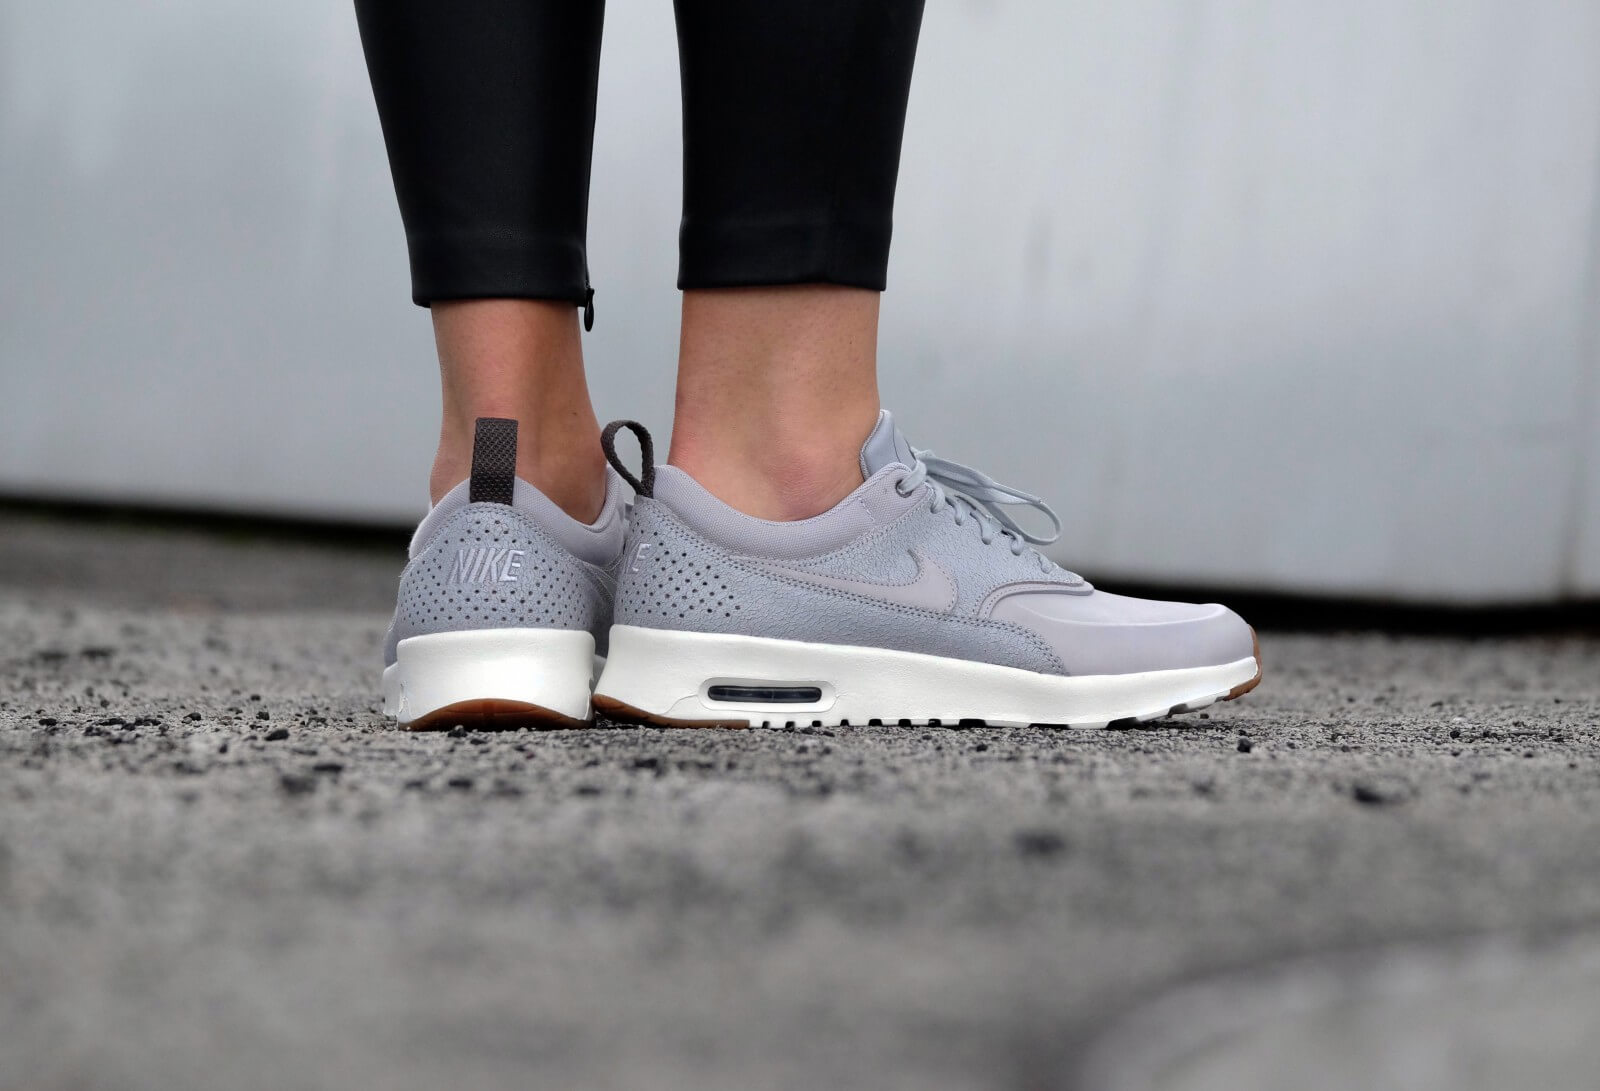 Nike WMNS Air Max Thea PRM Wolf GreyWolf Grey Sail Midnight Fog 616723 013